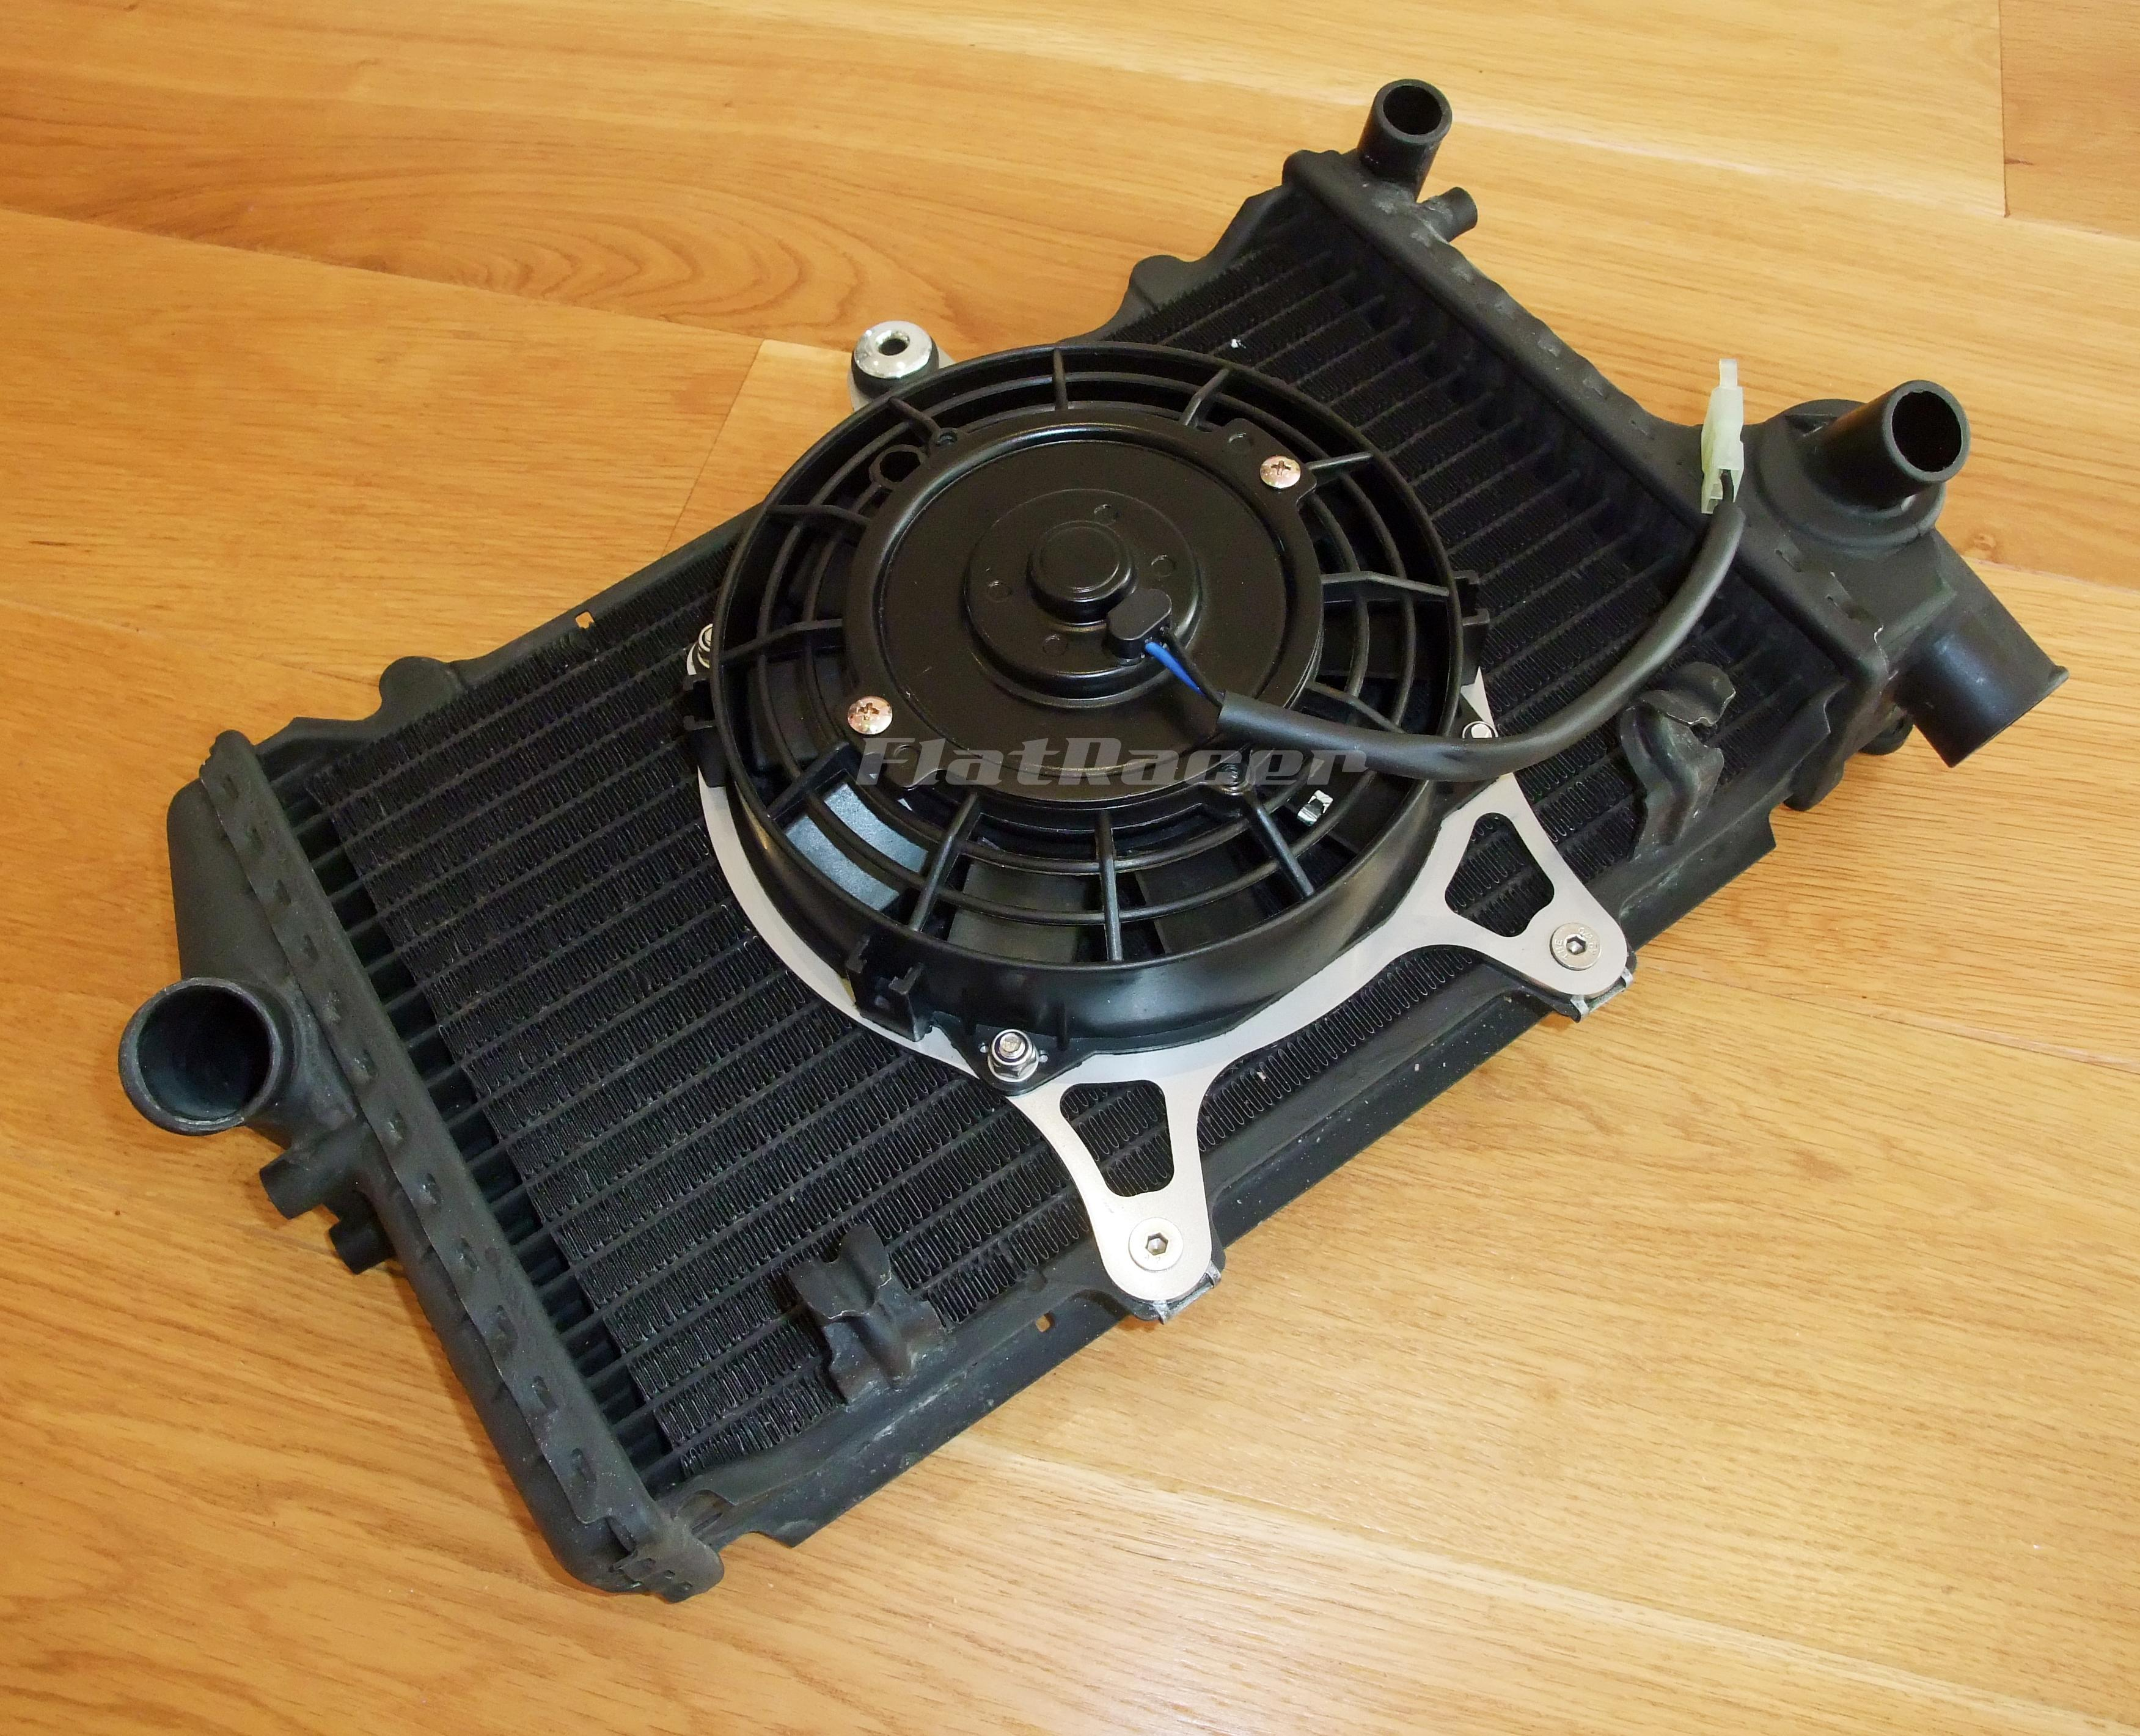 FlatRacer BMW K series radiator fan kit - fit K100, K75, K1 & K1100 models (83-96)